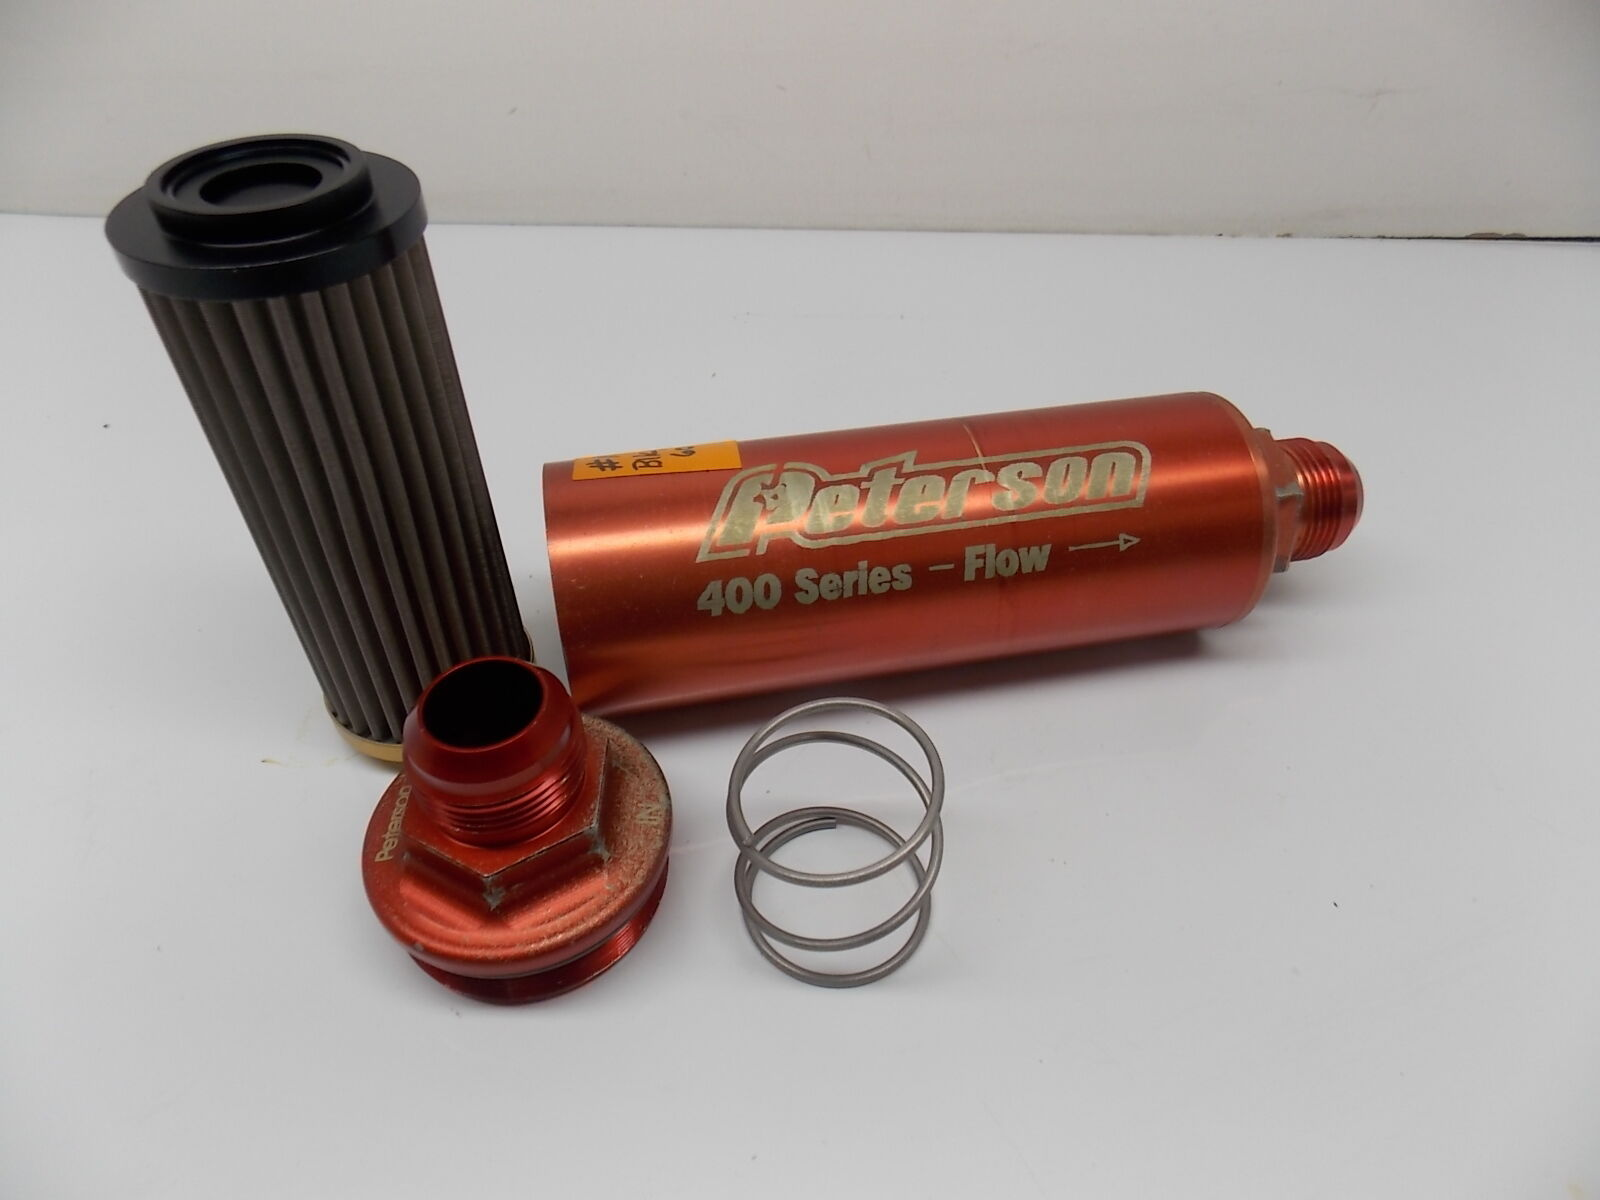 hight resolution of  16 inline oil fuel filter 60 micron peterson 400 series w bp race 031617 4